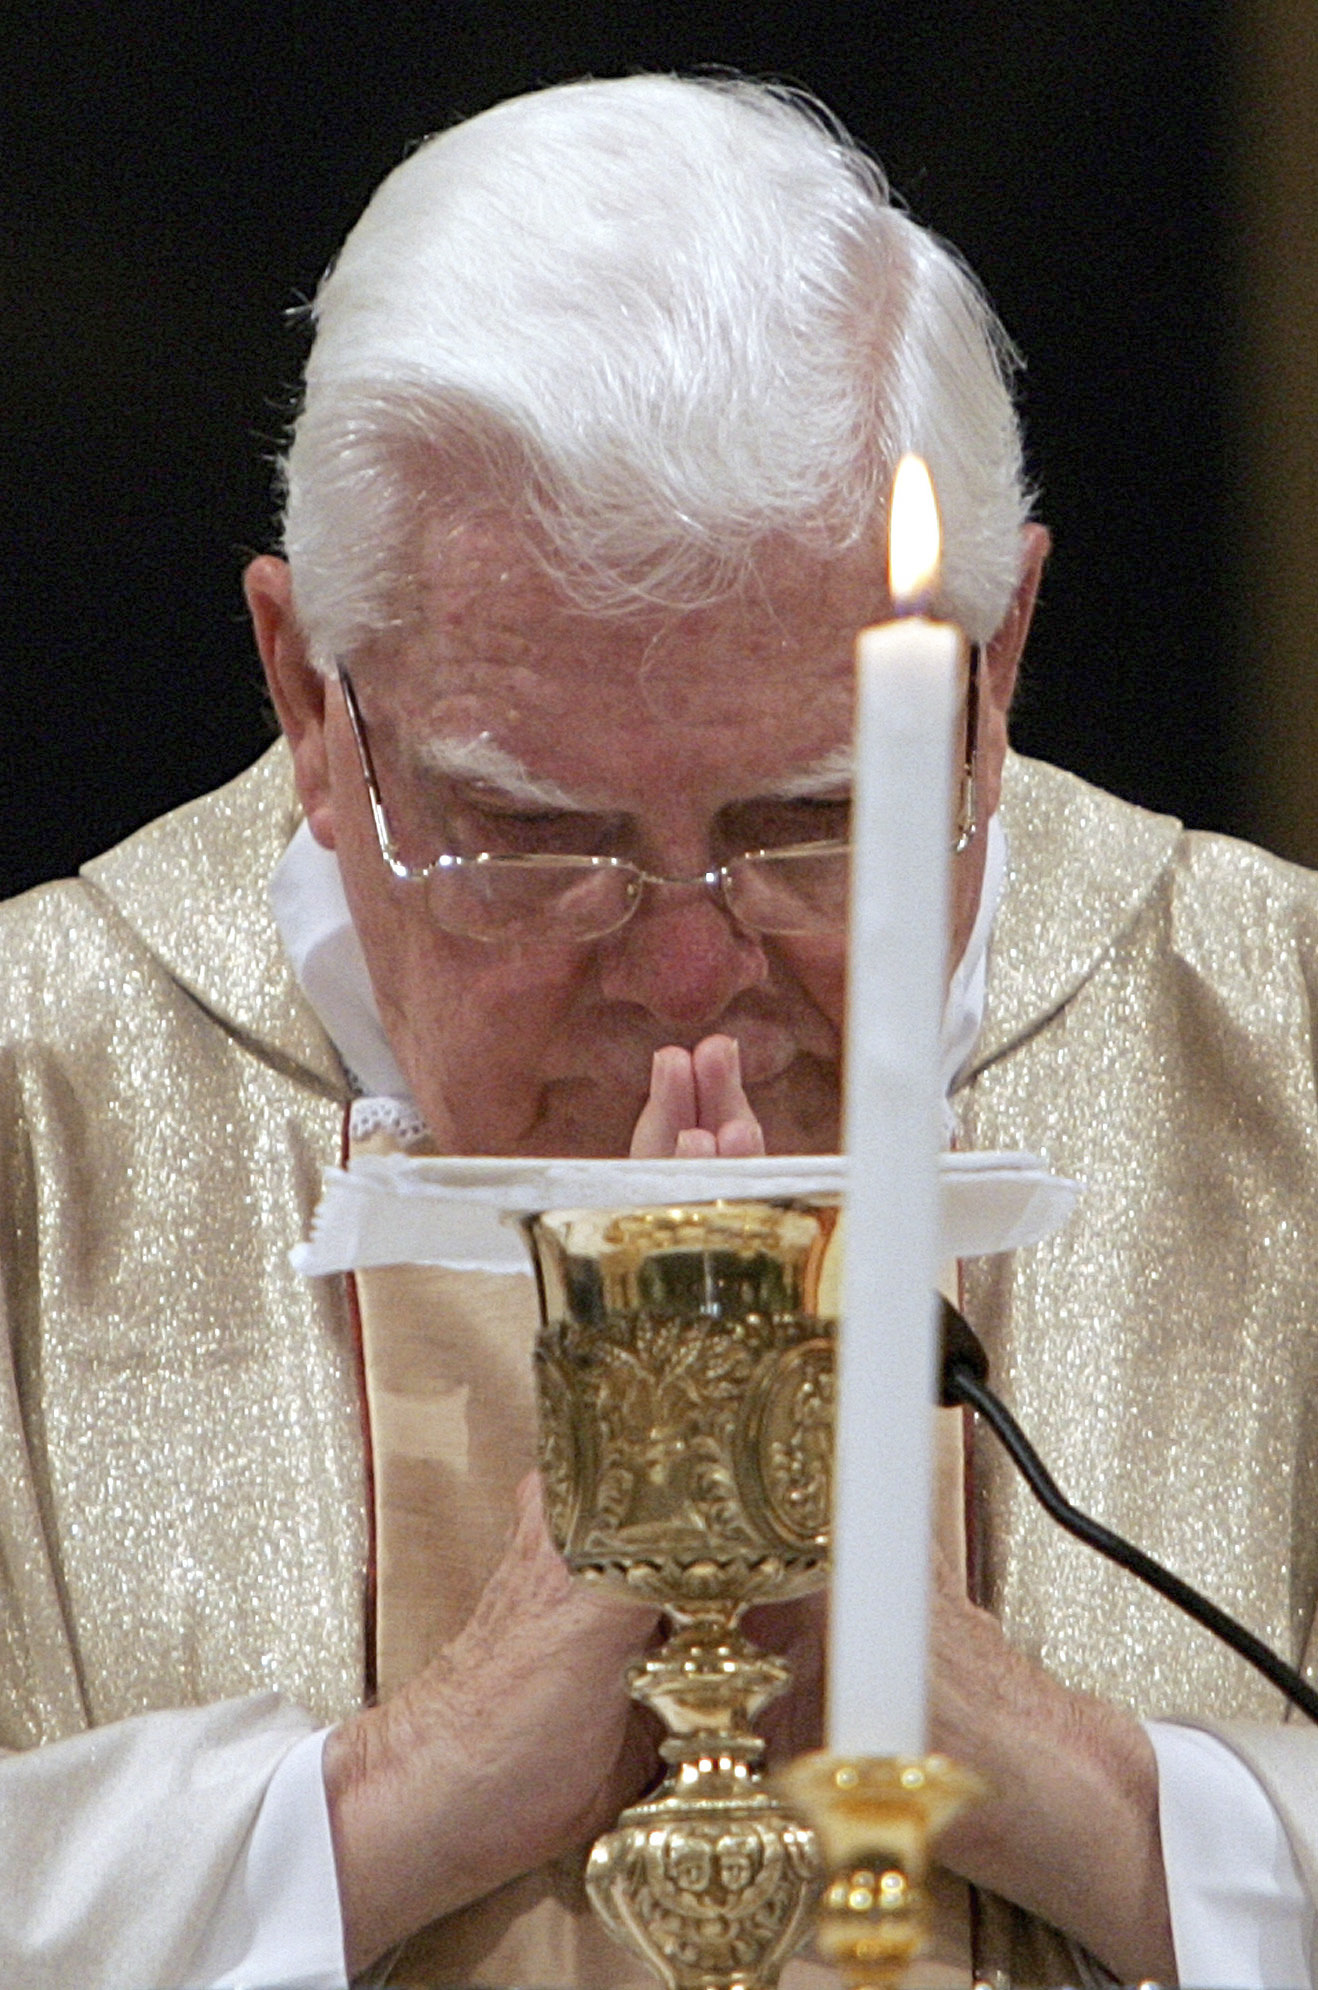 FILE - In this Thursday, Aug. 5, 2004 file photo, Cardinal Bernard Law celebrates Mass during the ceremony for Our Lady of the Snows, in St. Mary Major's Basilica, in Rome, Italy. An official with the Catholic Church said Tuesday, Dec. 19, 2017, that Law, the disgraced former archbishop of Boston, has died at 86. Law stepped down under pressure in 2002 over his handling of clergy sex abuse cases. (AP Photo/Domenico Stinellis, File)